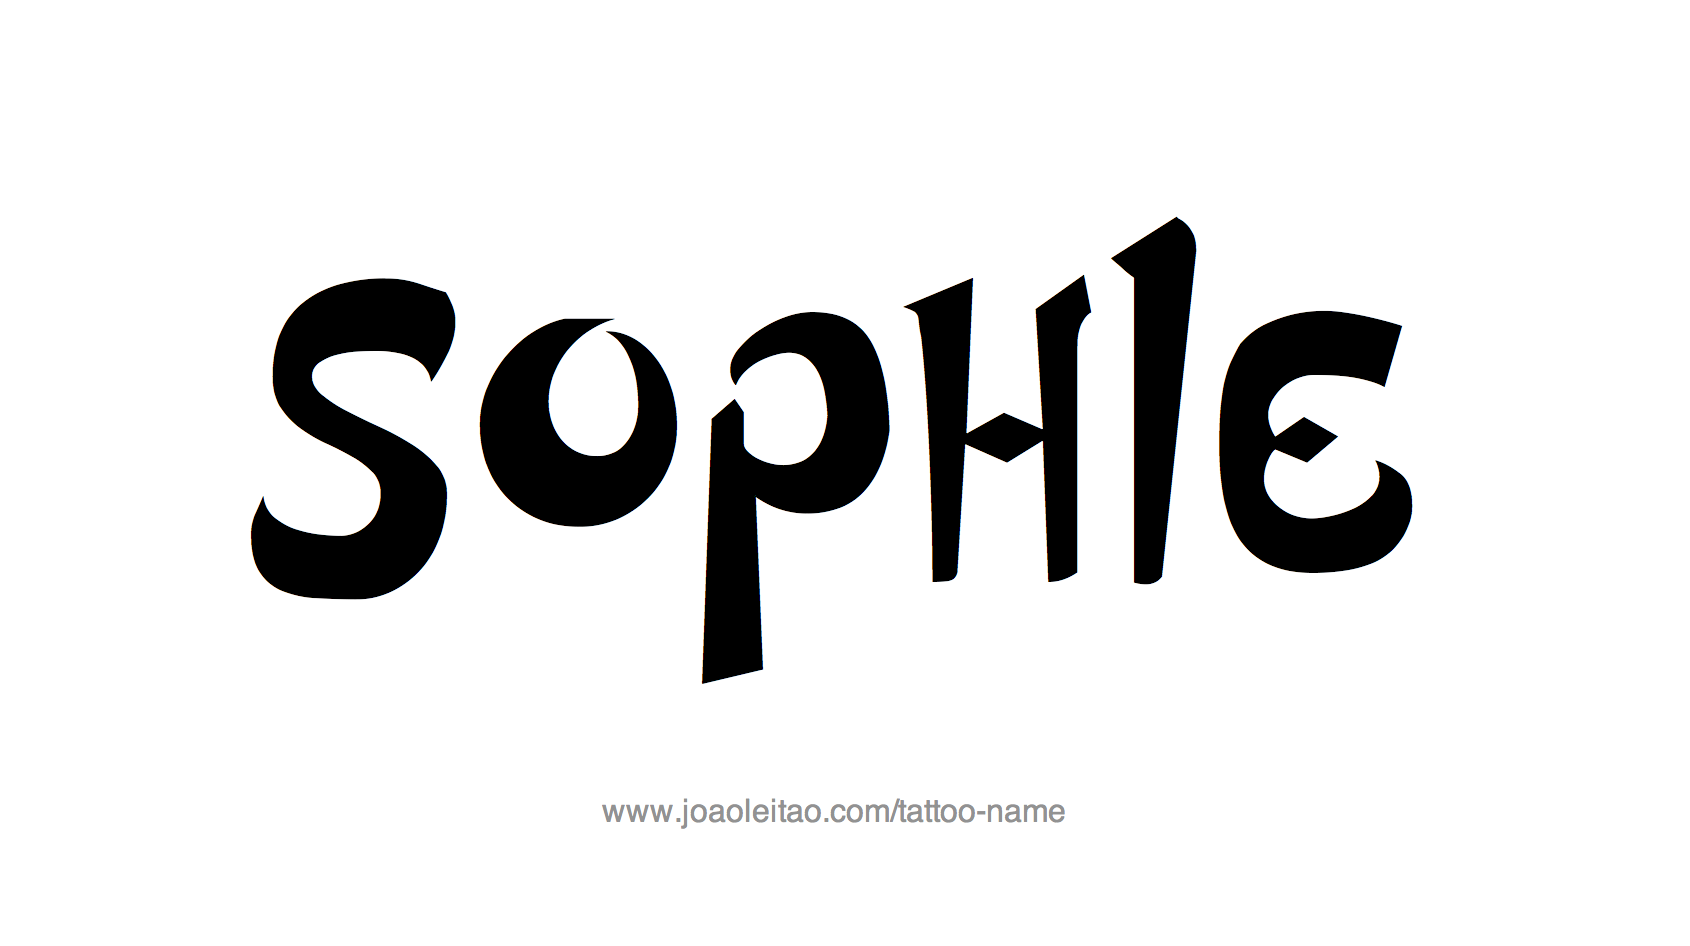 Name: Sophie Name Tattoo Designs